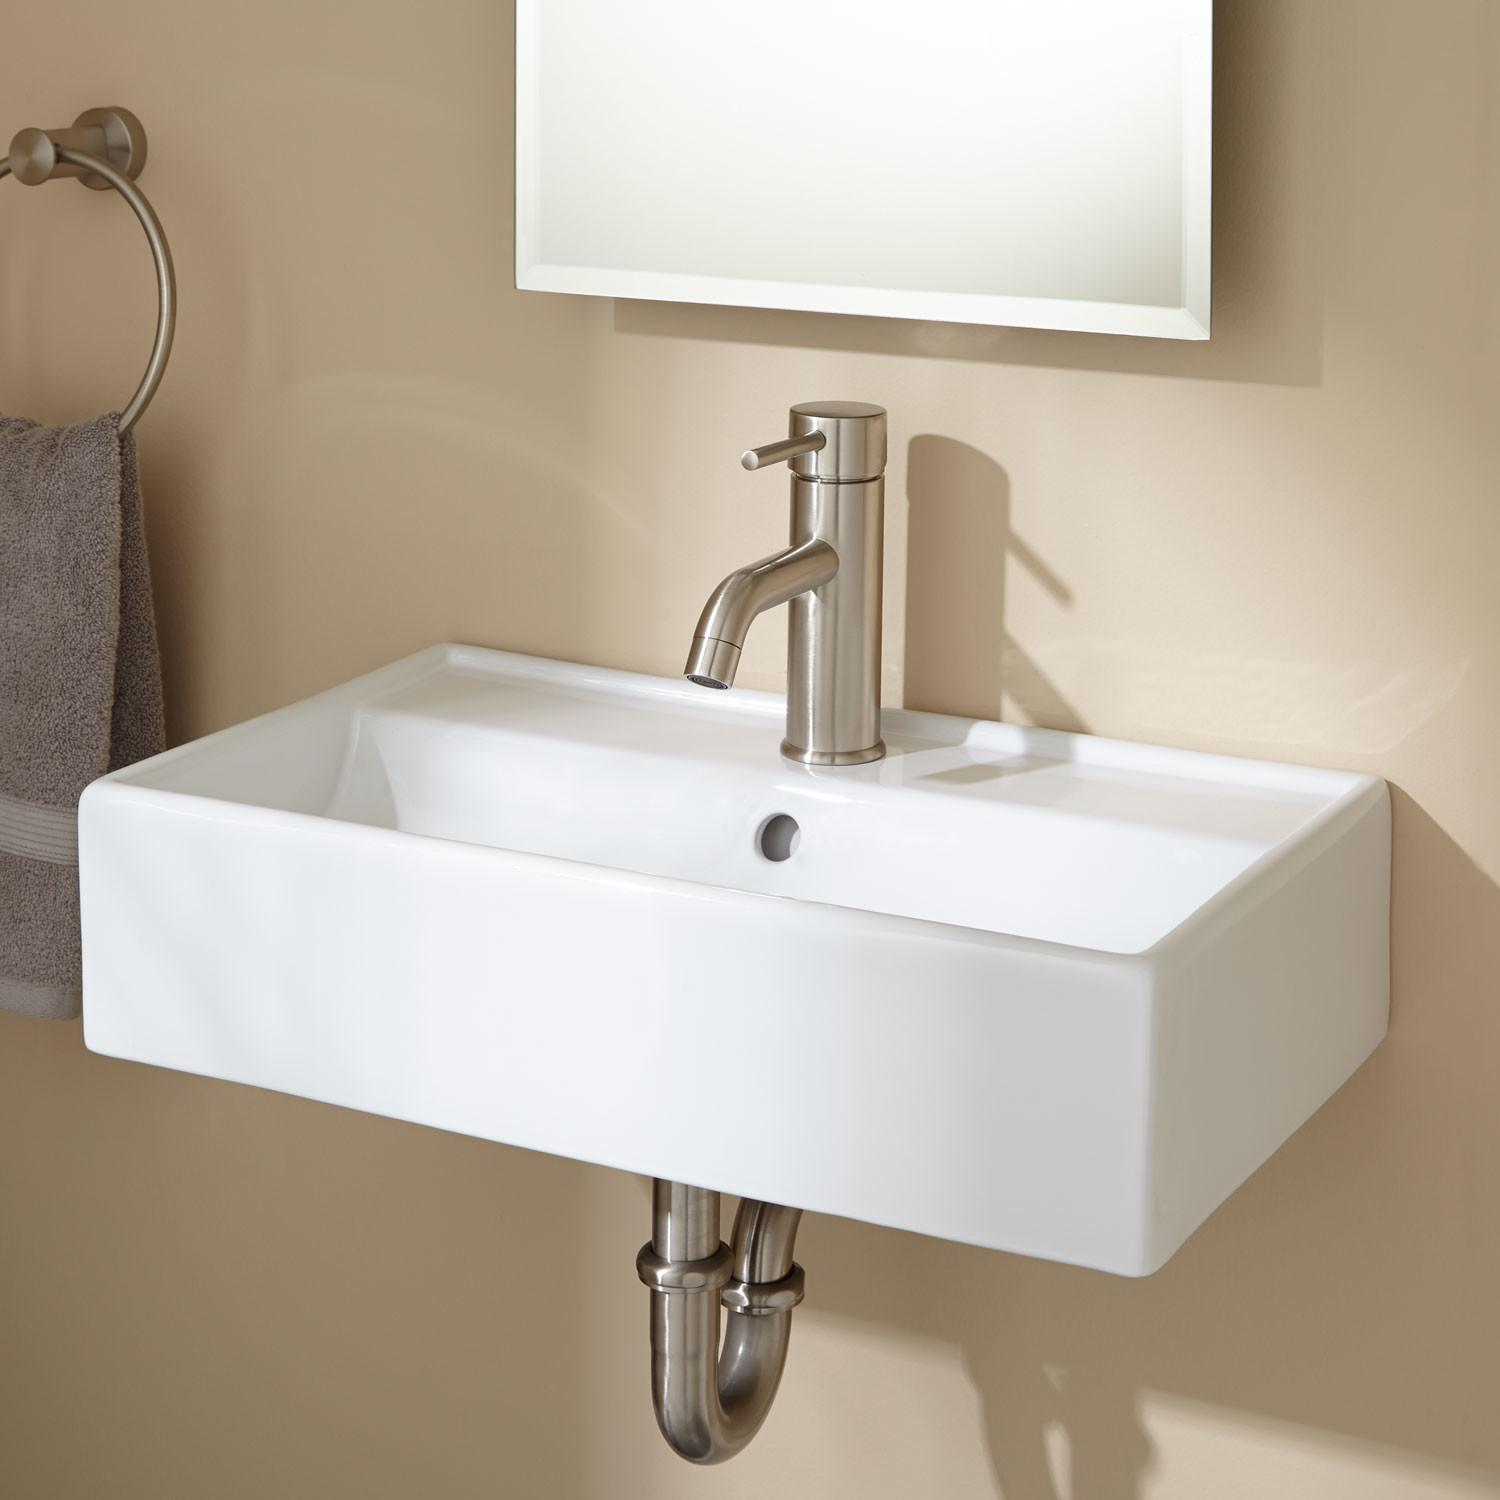 Magali Wall Mount Bathroom Sink